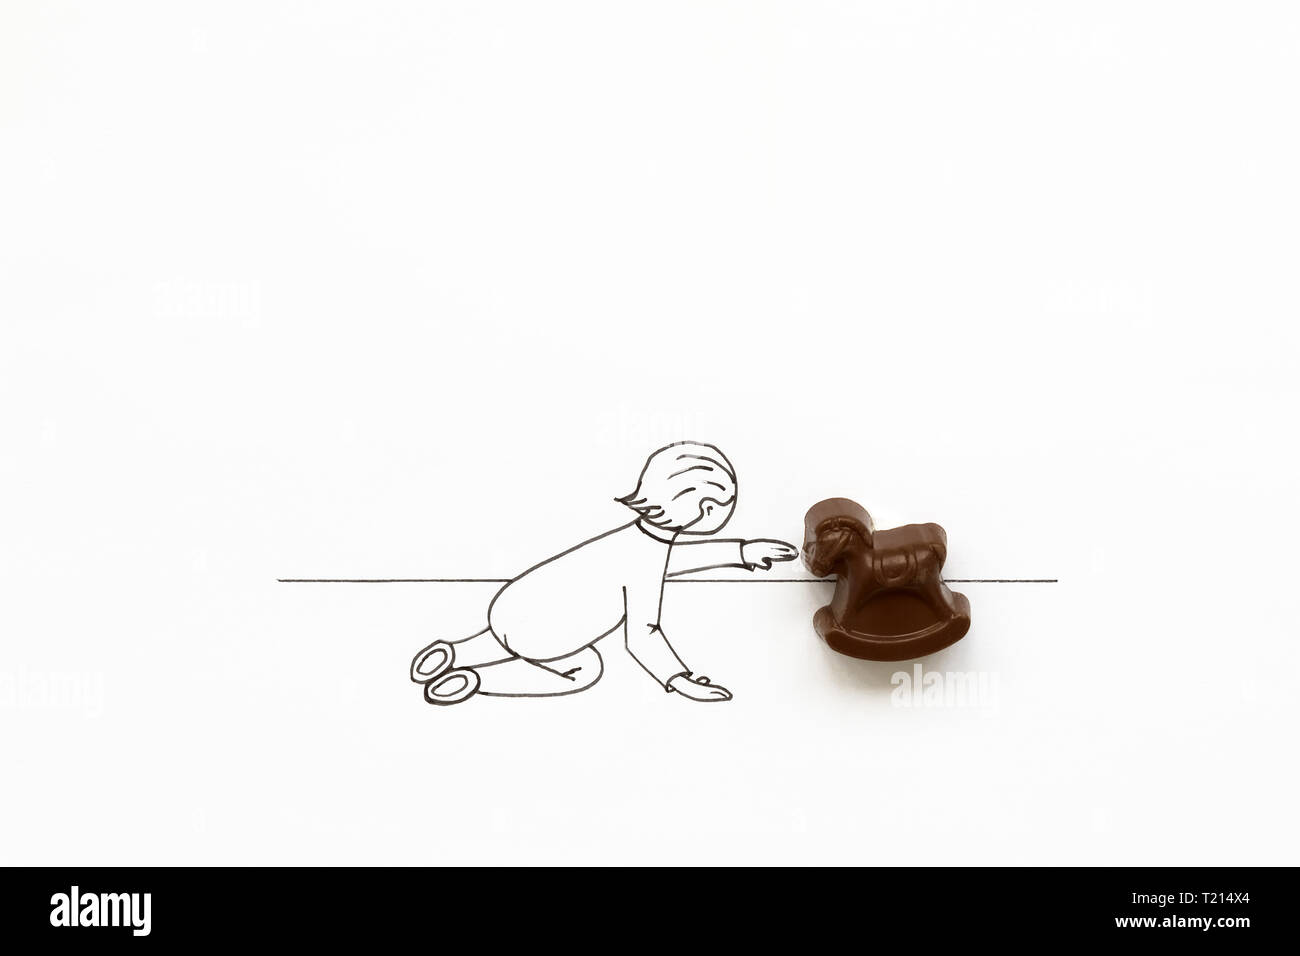 Hand Drawing Cute Cartoon Baby Playing With Toy Rocking Horse Minimal Creative Or Food Art Concept Copy Space Stock Photo Alamy